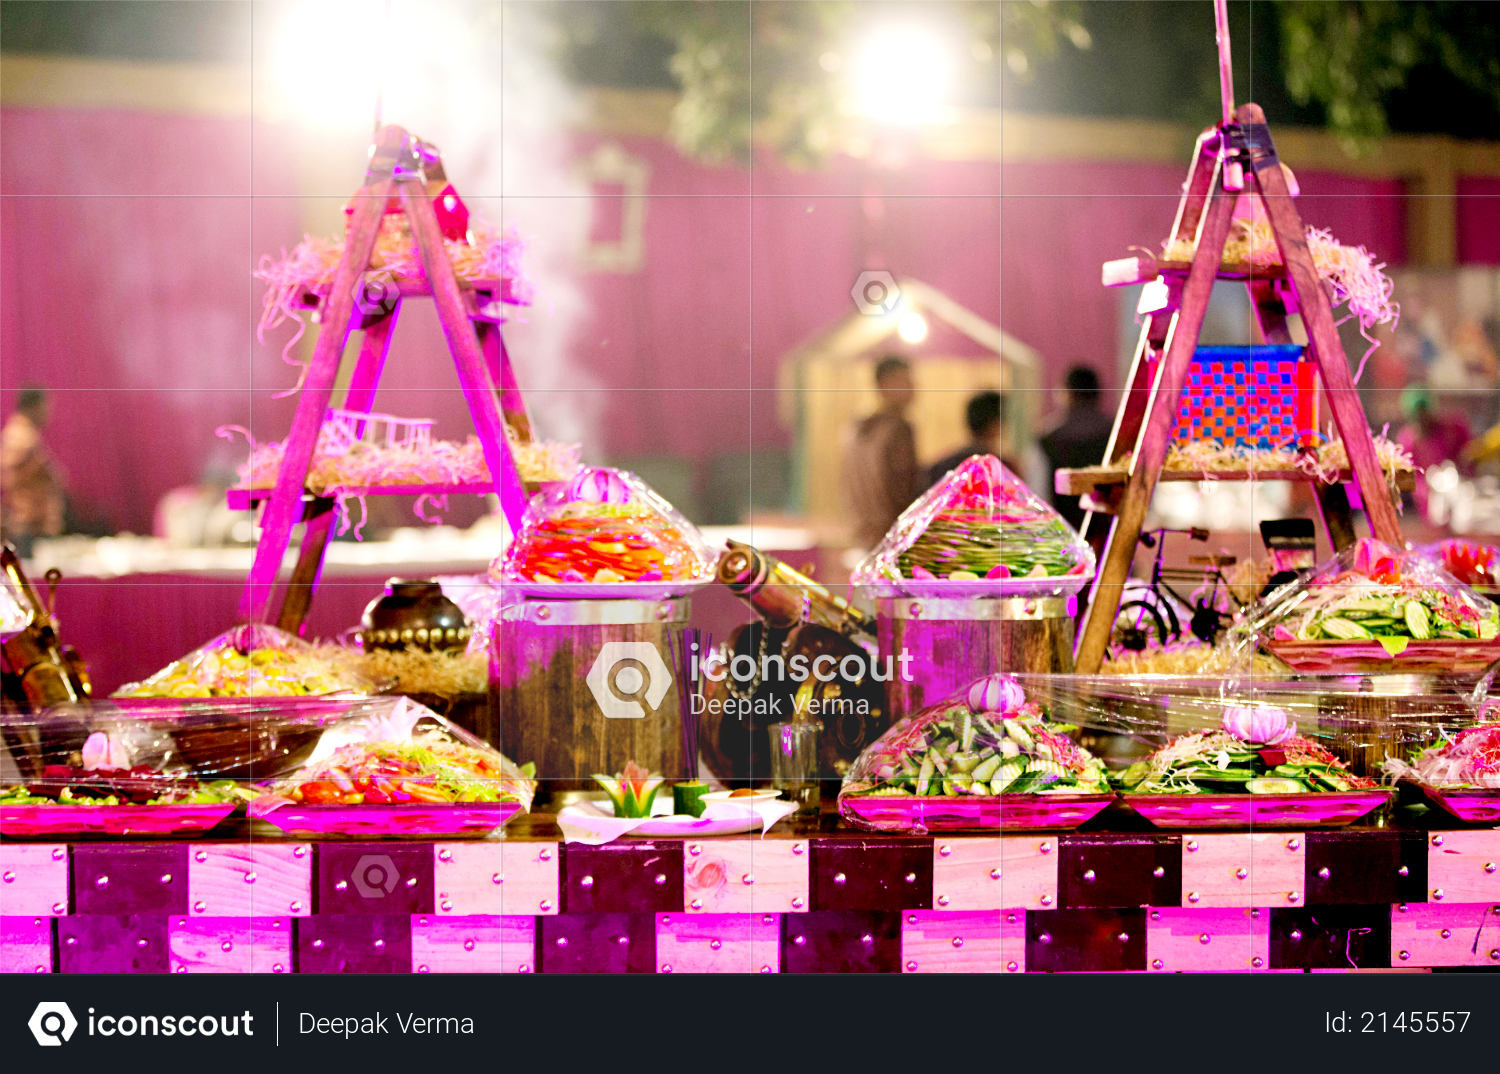 Beautifully decorated catering banquet table with variety of different food snacks and appetizers on party event or wedding celebration Photo